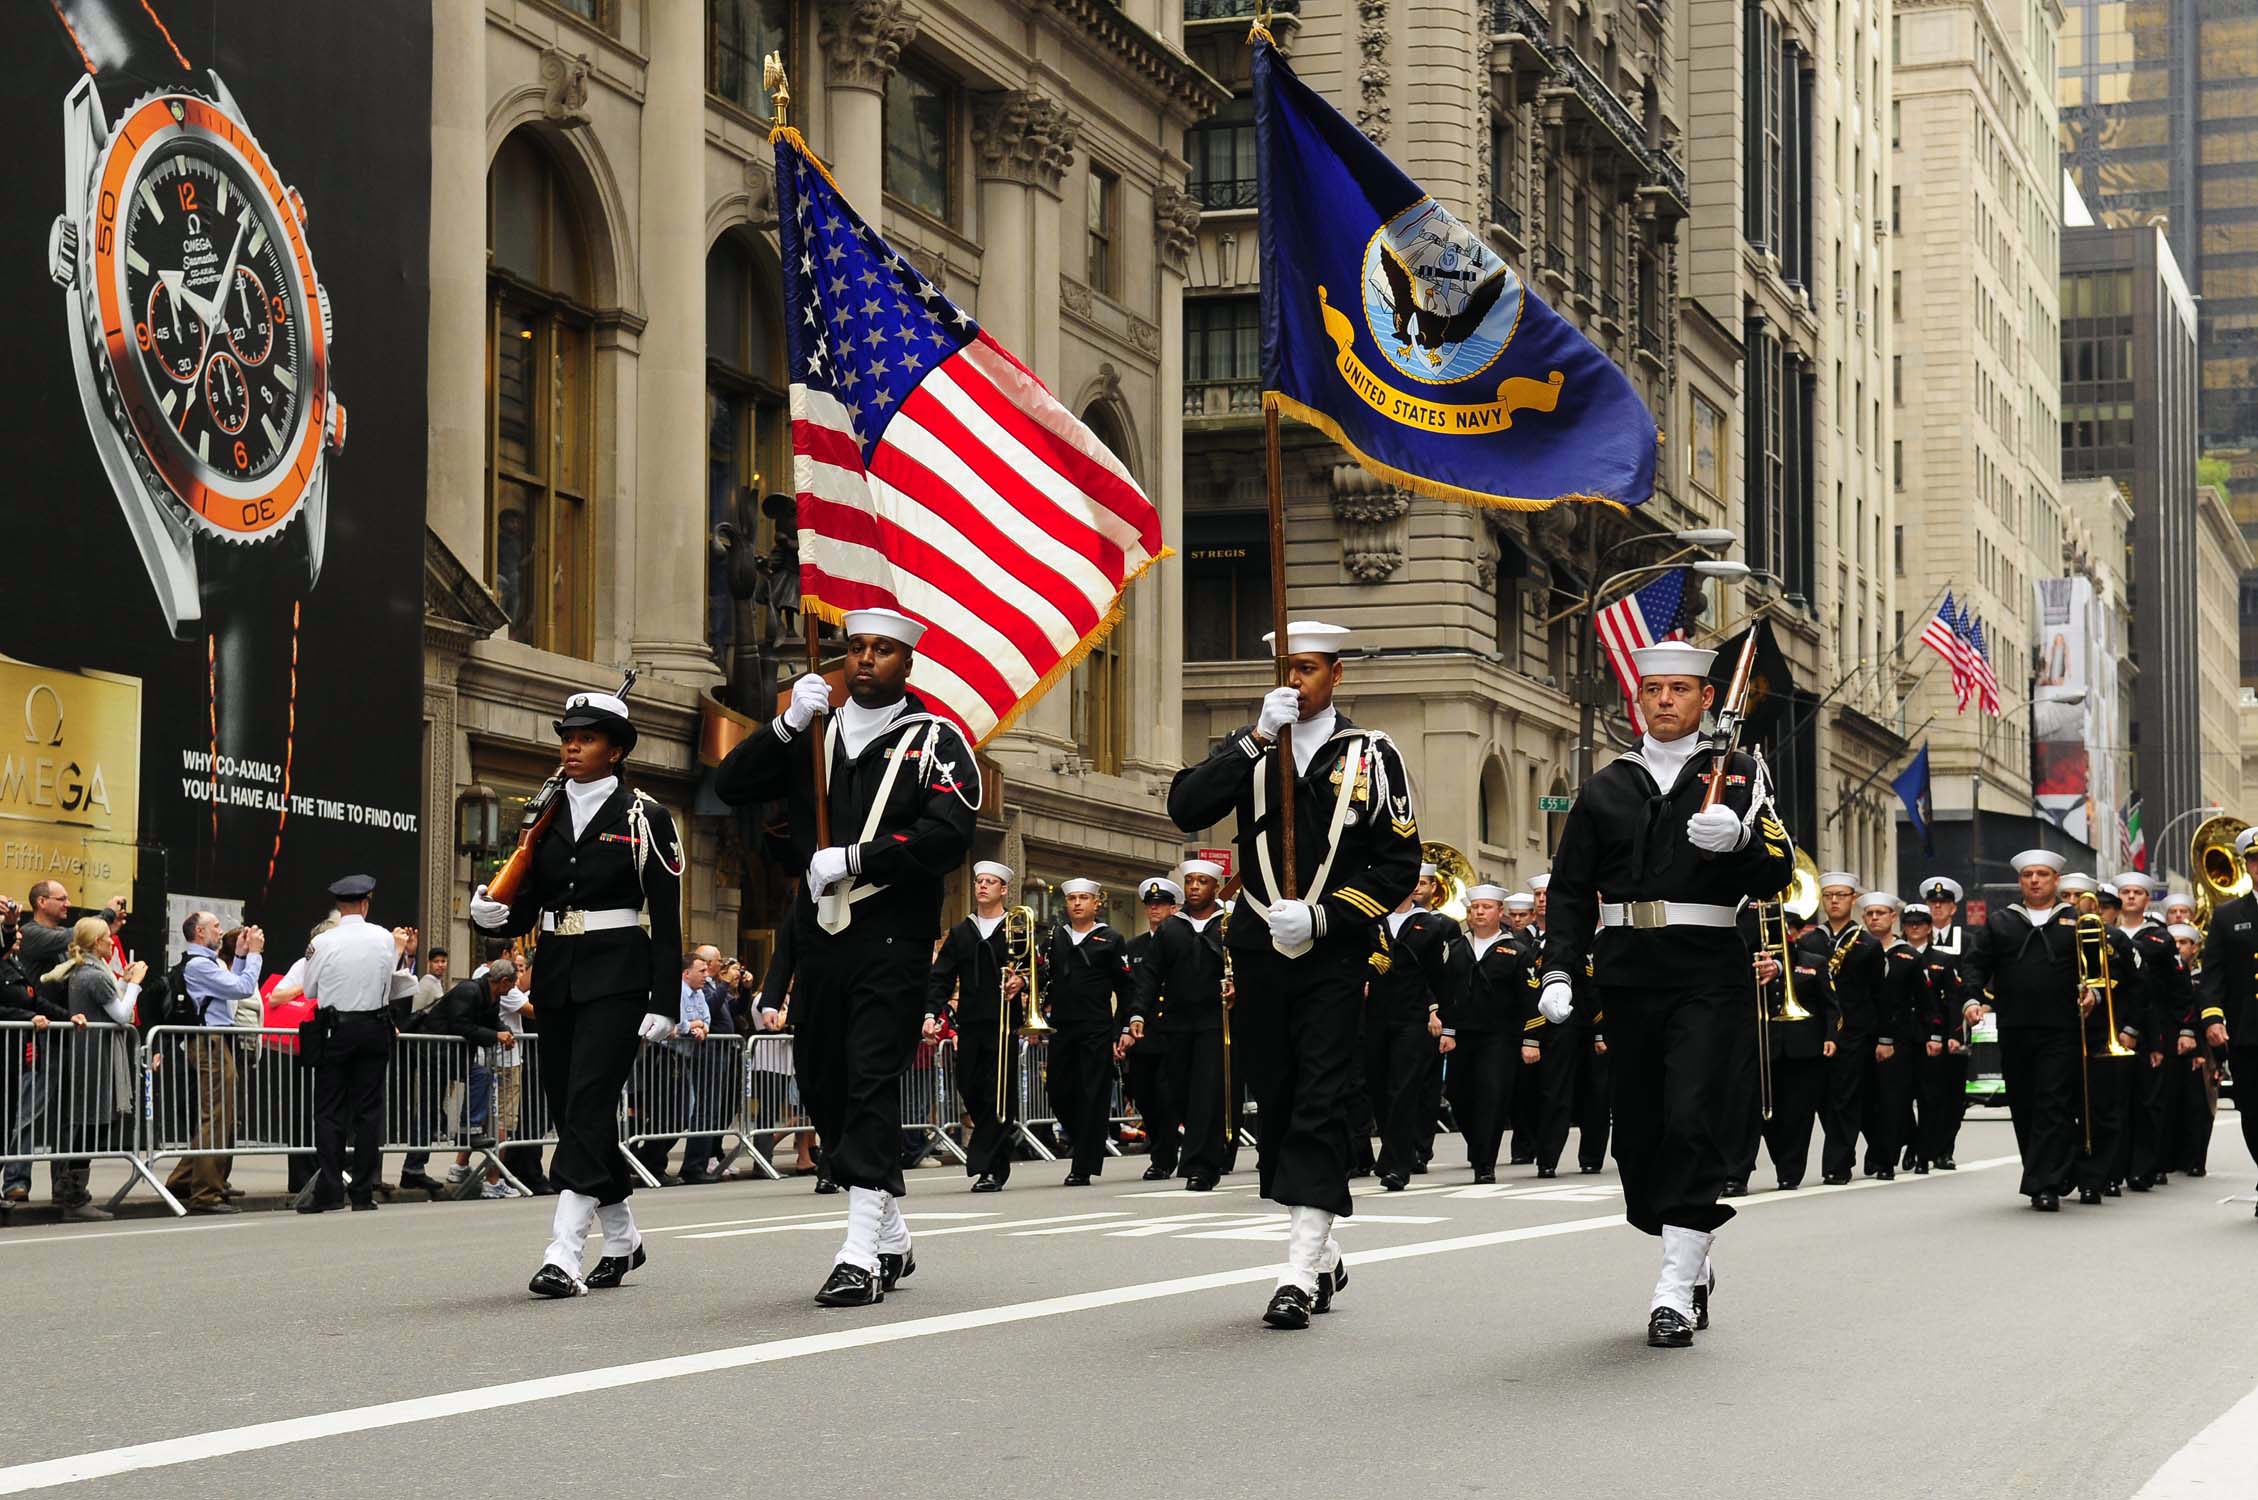 081013-N-5758H-061 NEW YORK (Oct. 13, 2008) Navy Operation Support Center, Bronx Color Guard leads the 64th Annual Columbus Day Parade up New York City's 5th Avenue. The parade is sponsored by the Columbus Citizens Foundation every year as part of Columbus Day Celebration, with this year's festivities commemorating the Great White Fleet Voyage in 1907. (U.S. Navy photo by Mass Communication Specialist 3rd Class Kenneth R. Hendrix/Released)